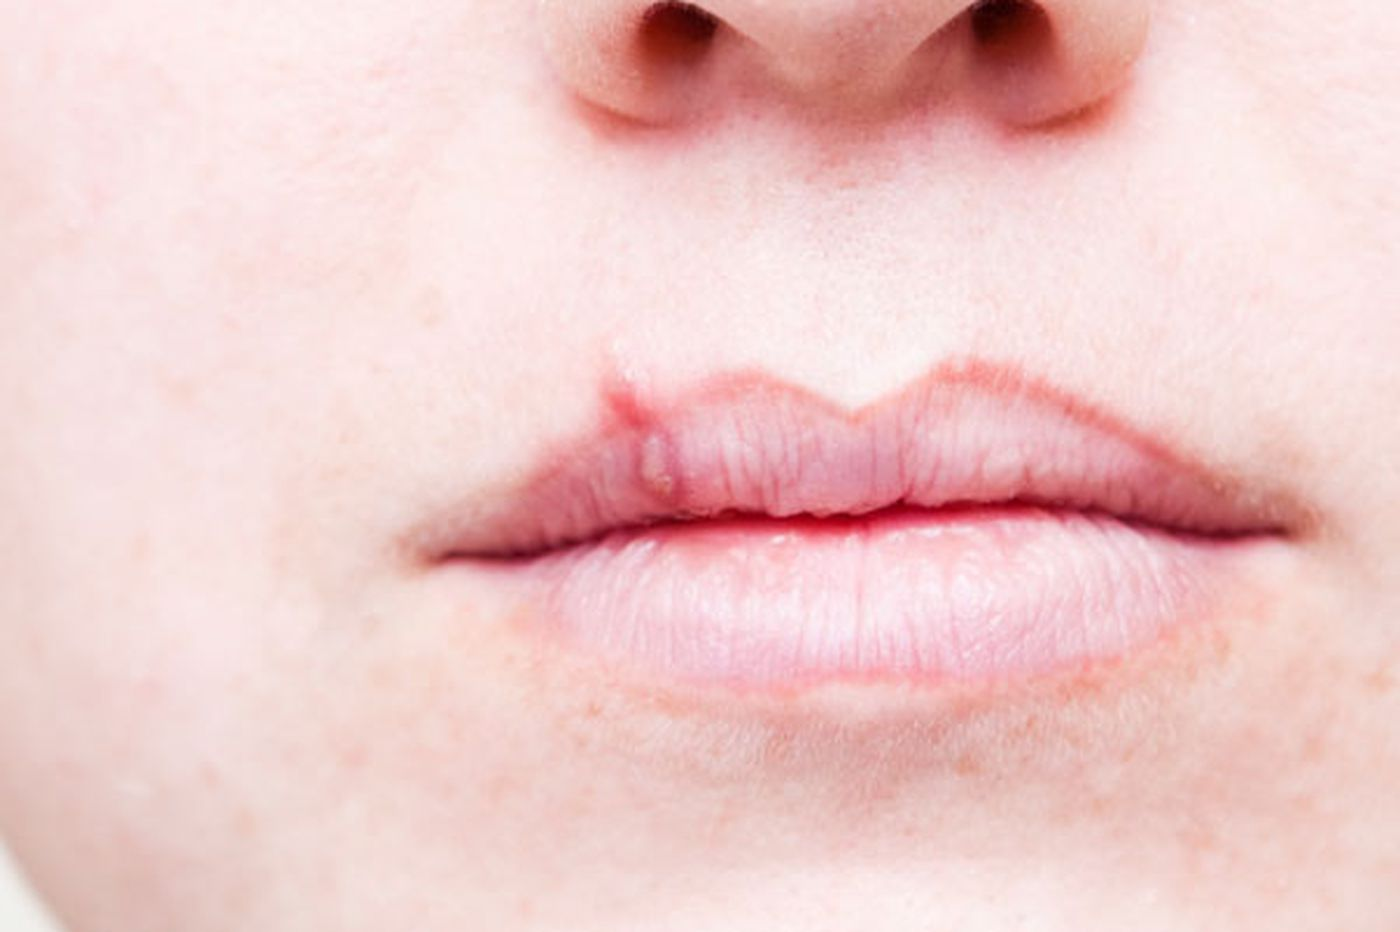 Ask Dr. H: Mysterious cure for cold sores